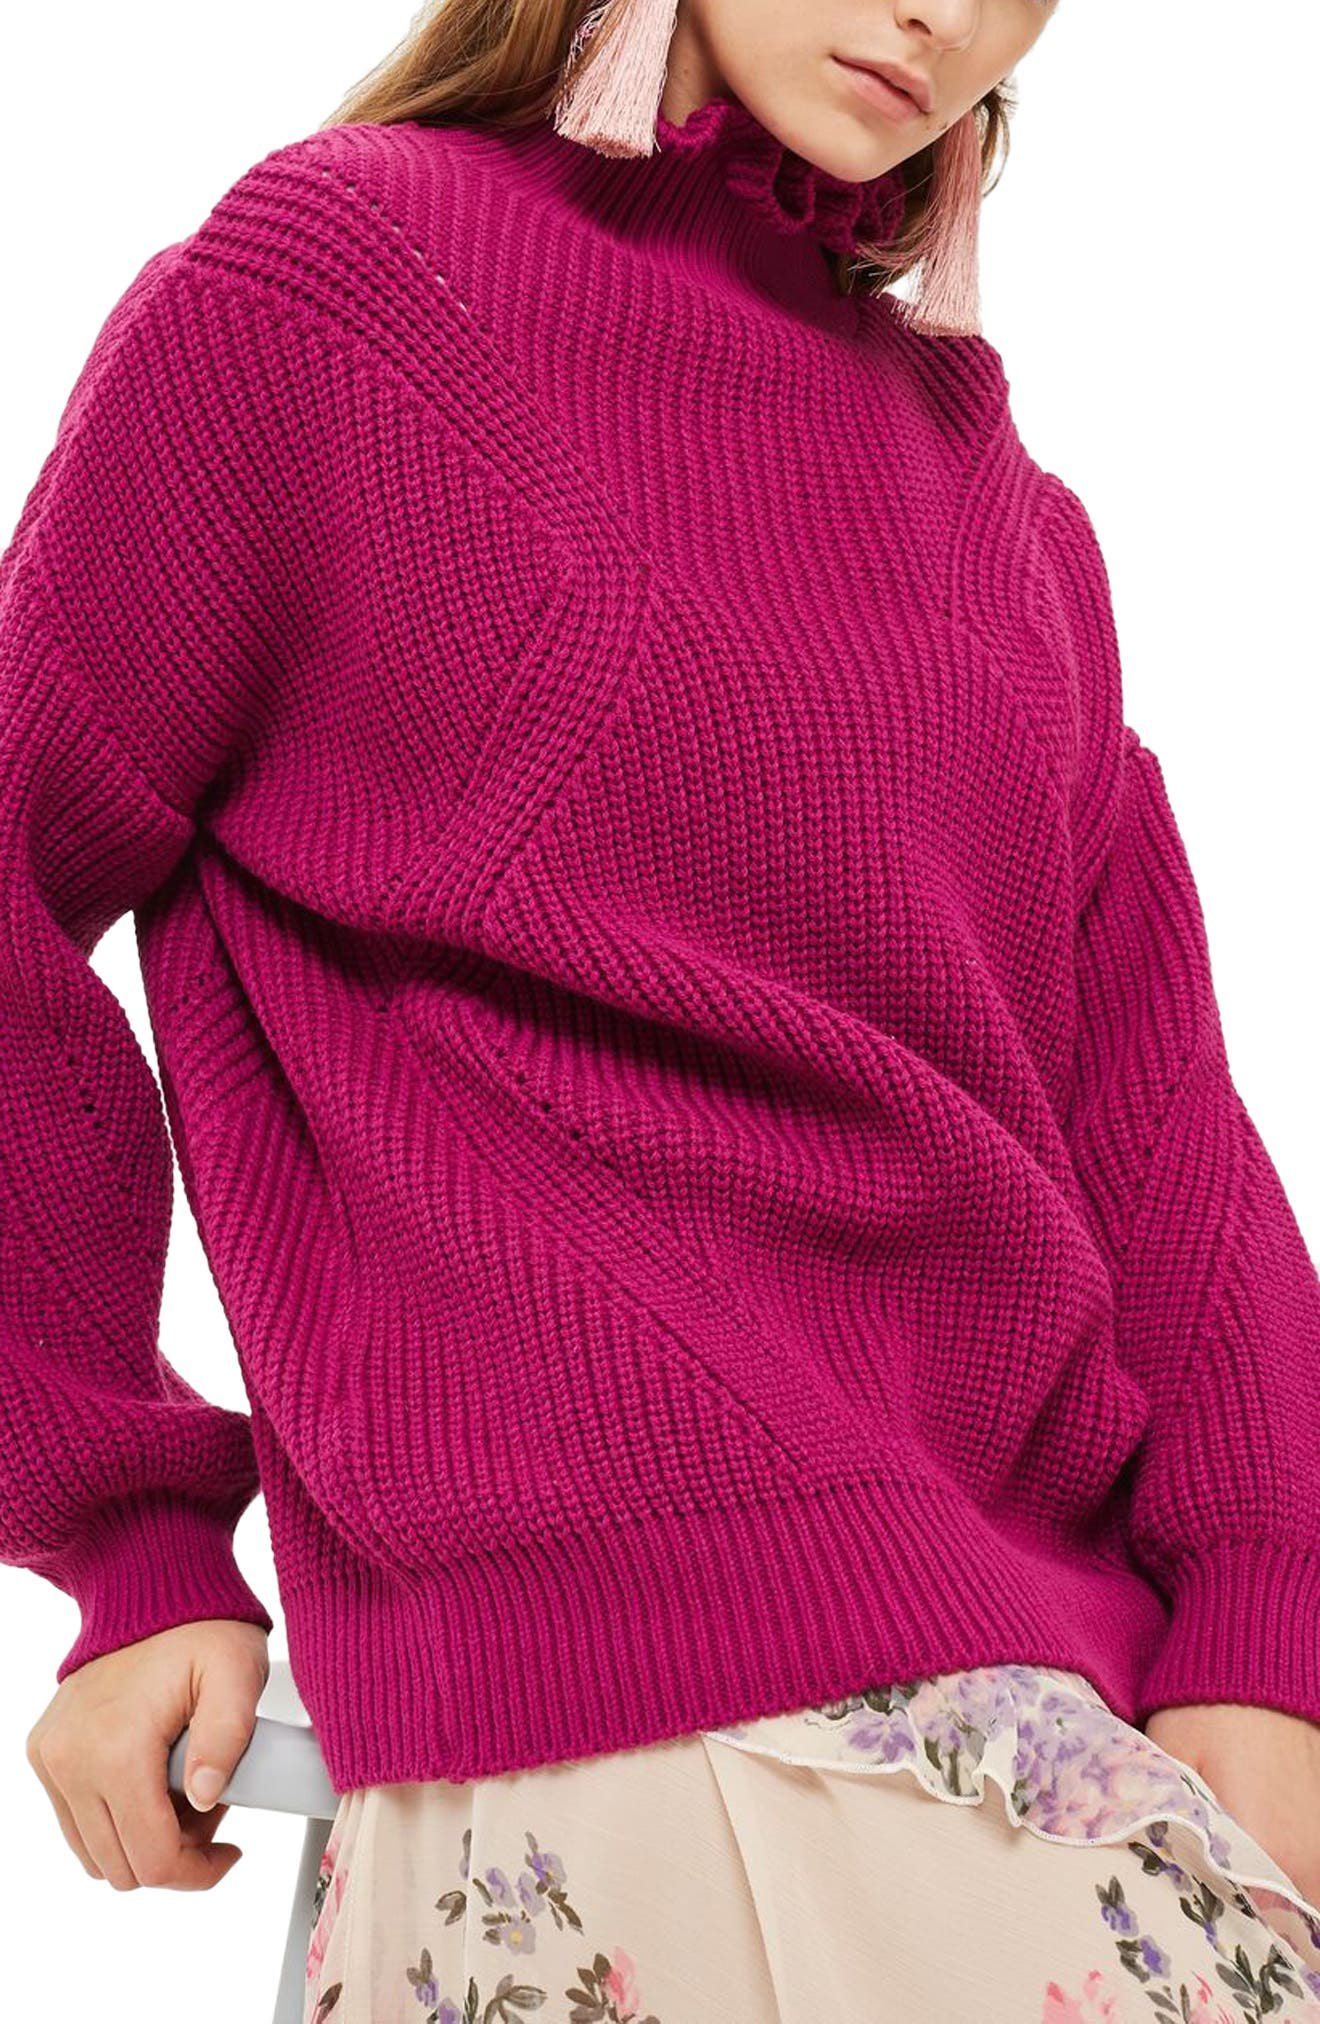 Main Image - Topshop Frill Neck Sweater